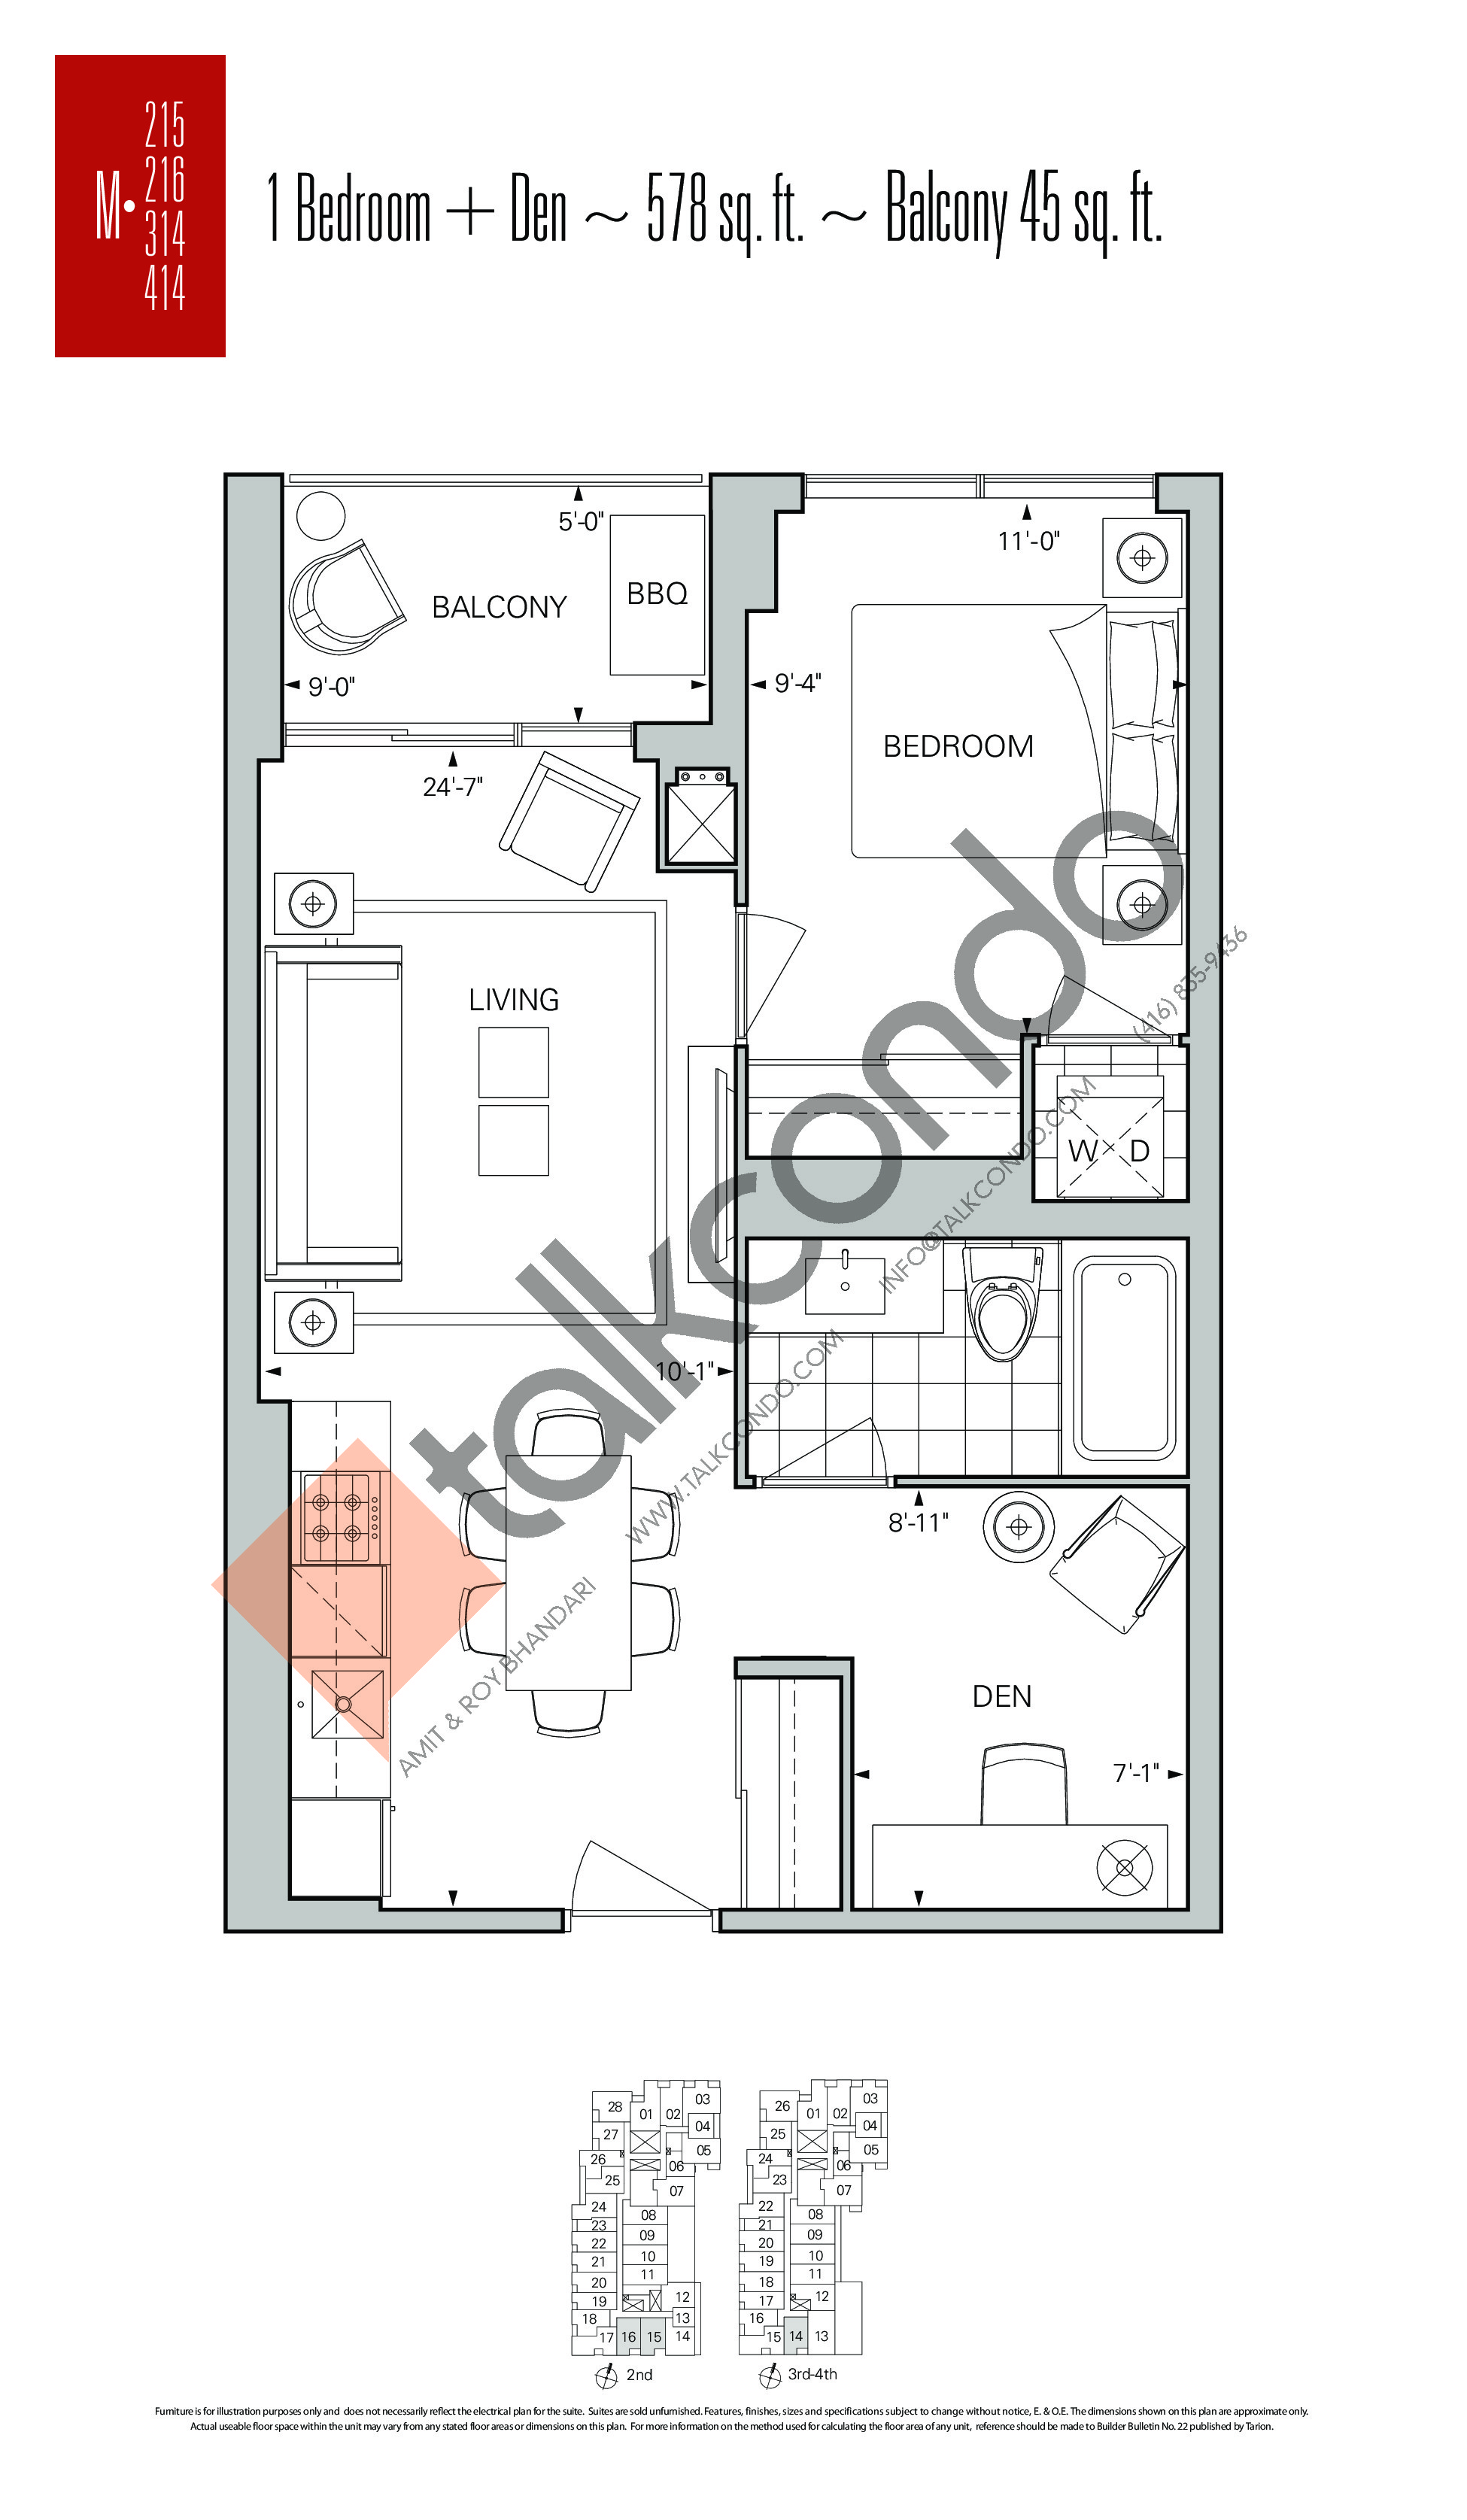 M-215 | M-216 | M-314 | M-414 Floor Plan at Rise Condos - 578 sq.ft